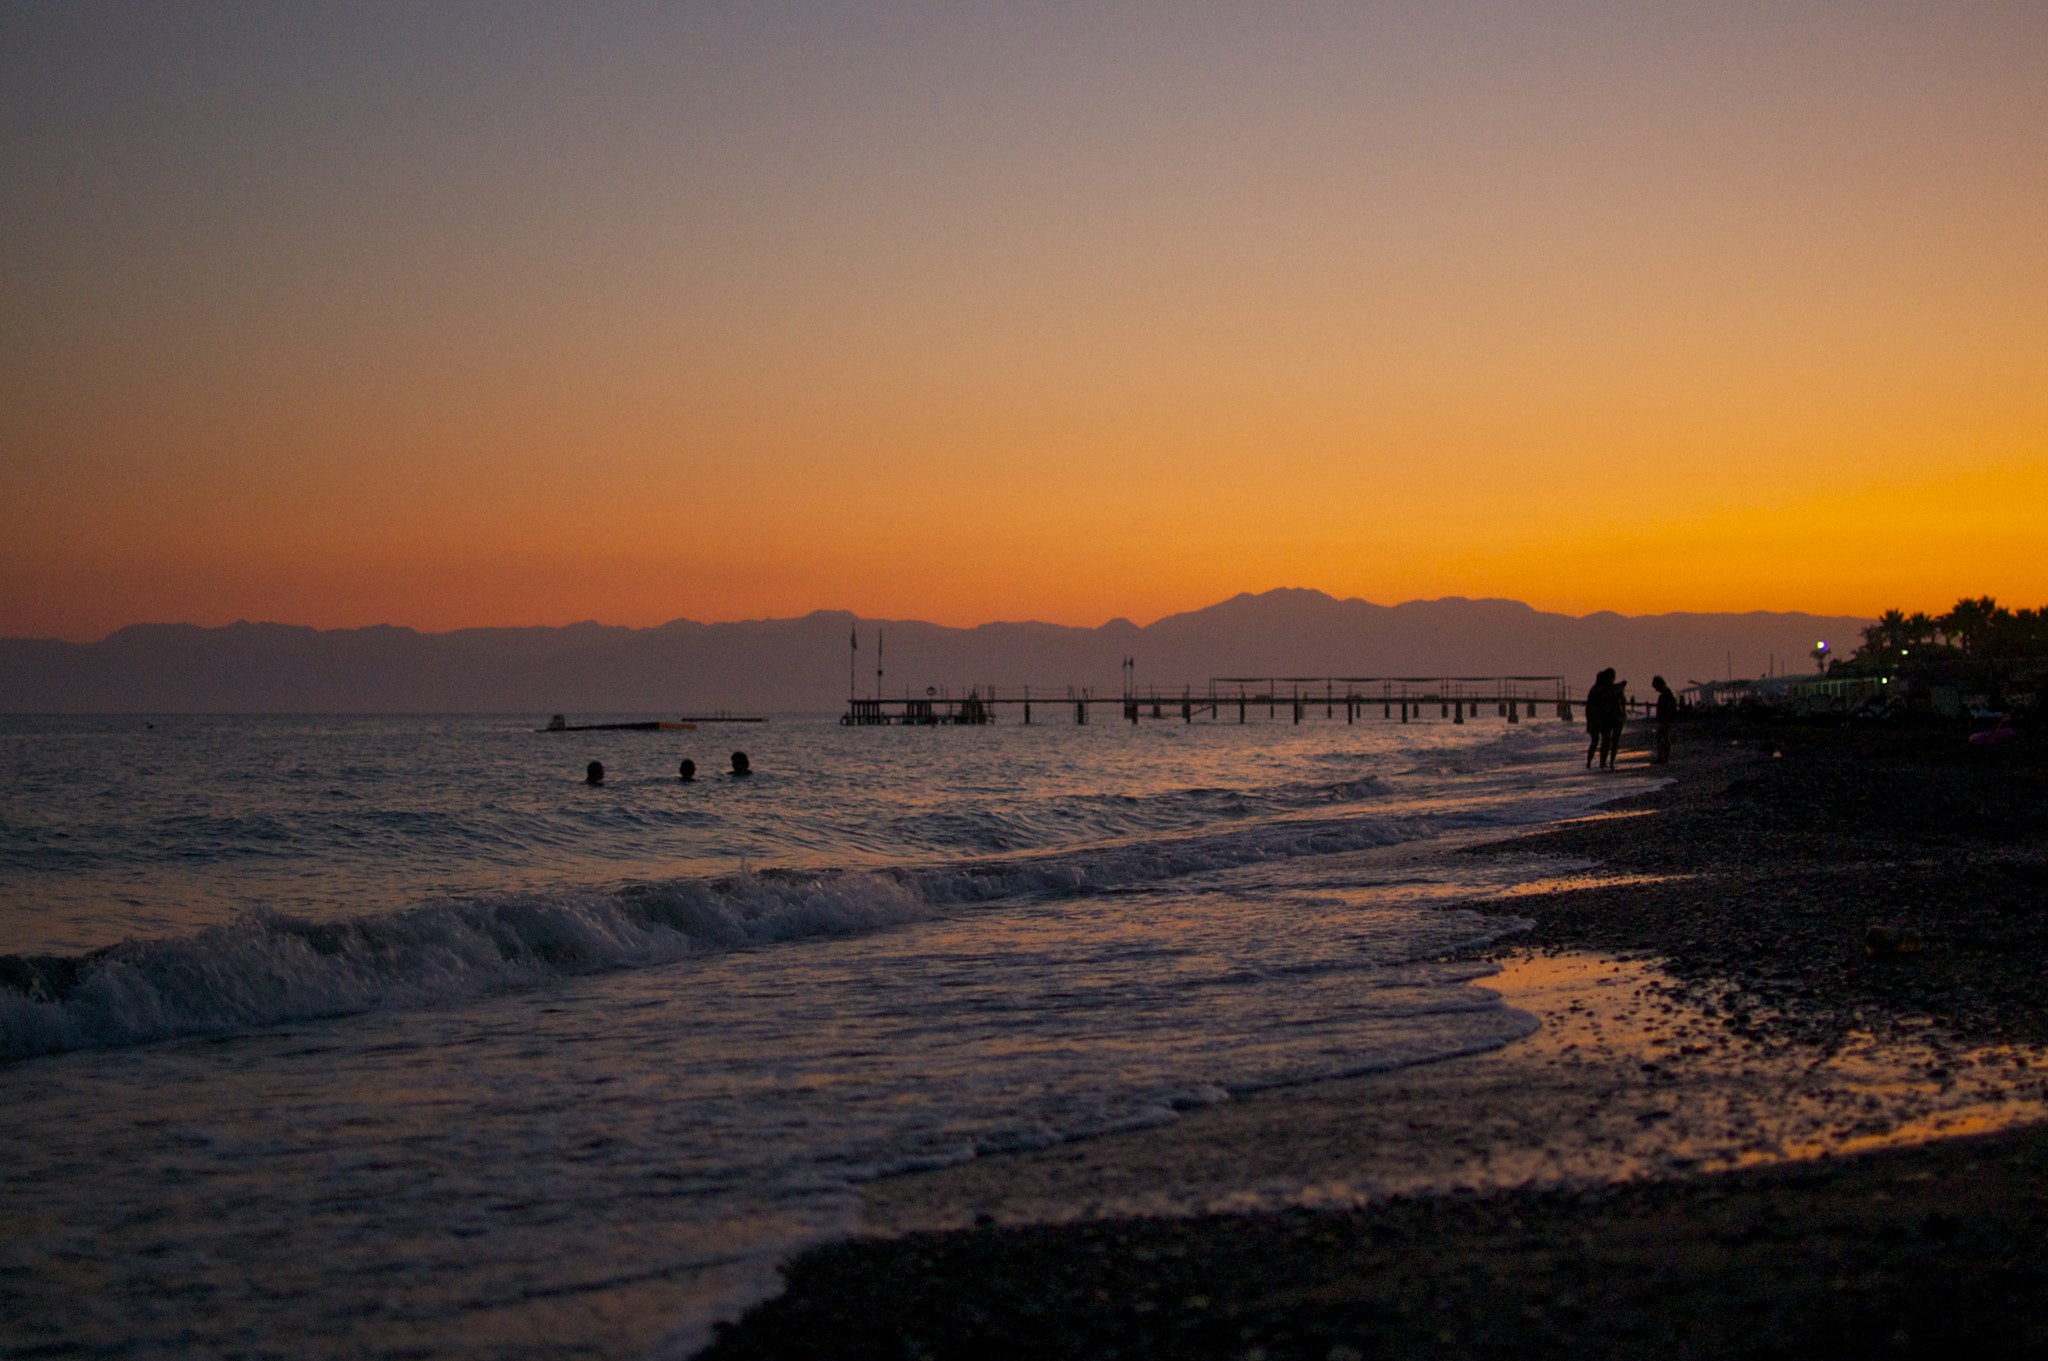 Photograph Sunset In Turkey by Niall Lea on 500px